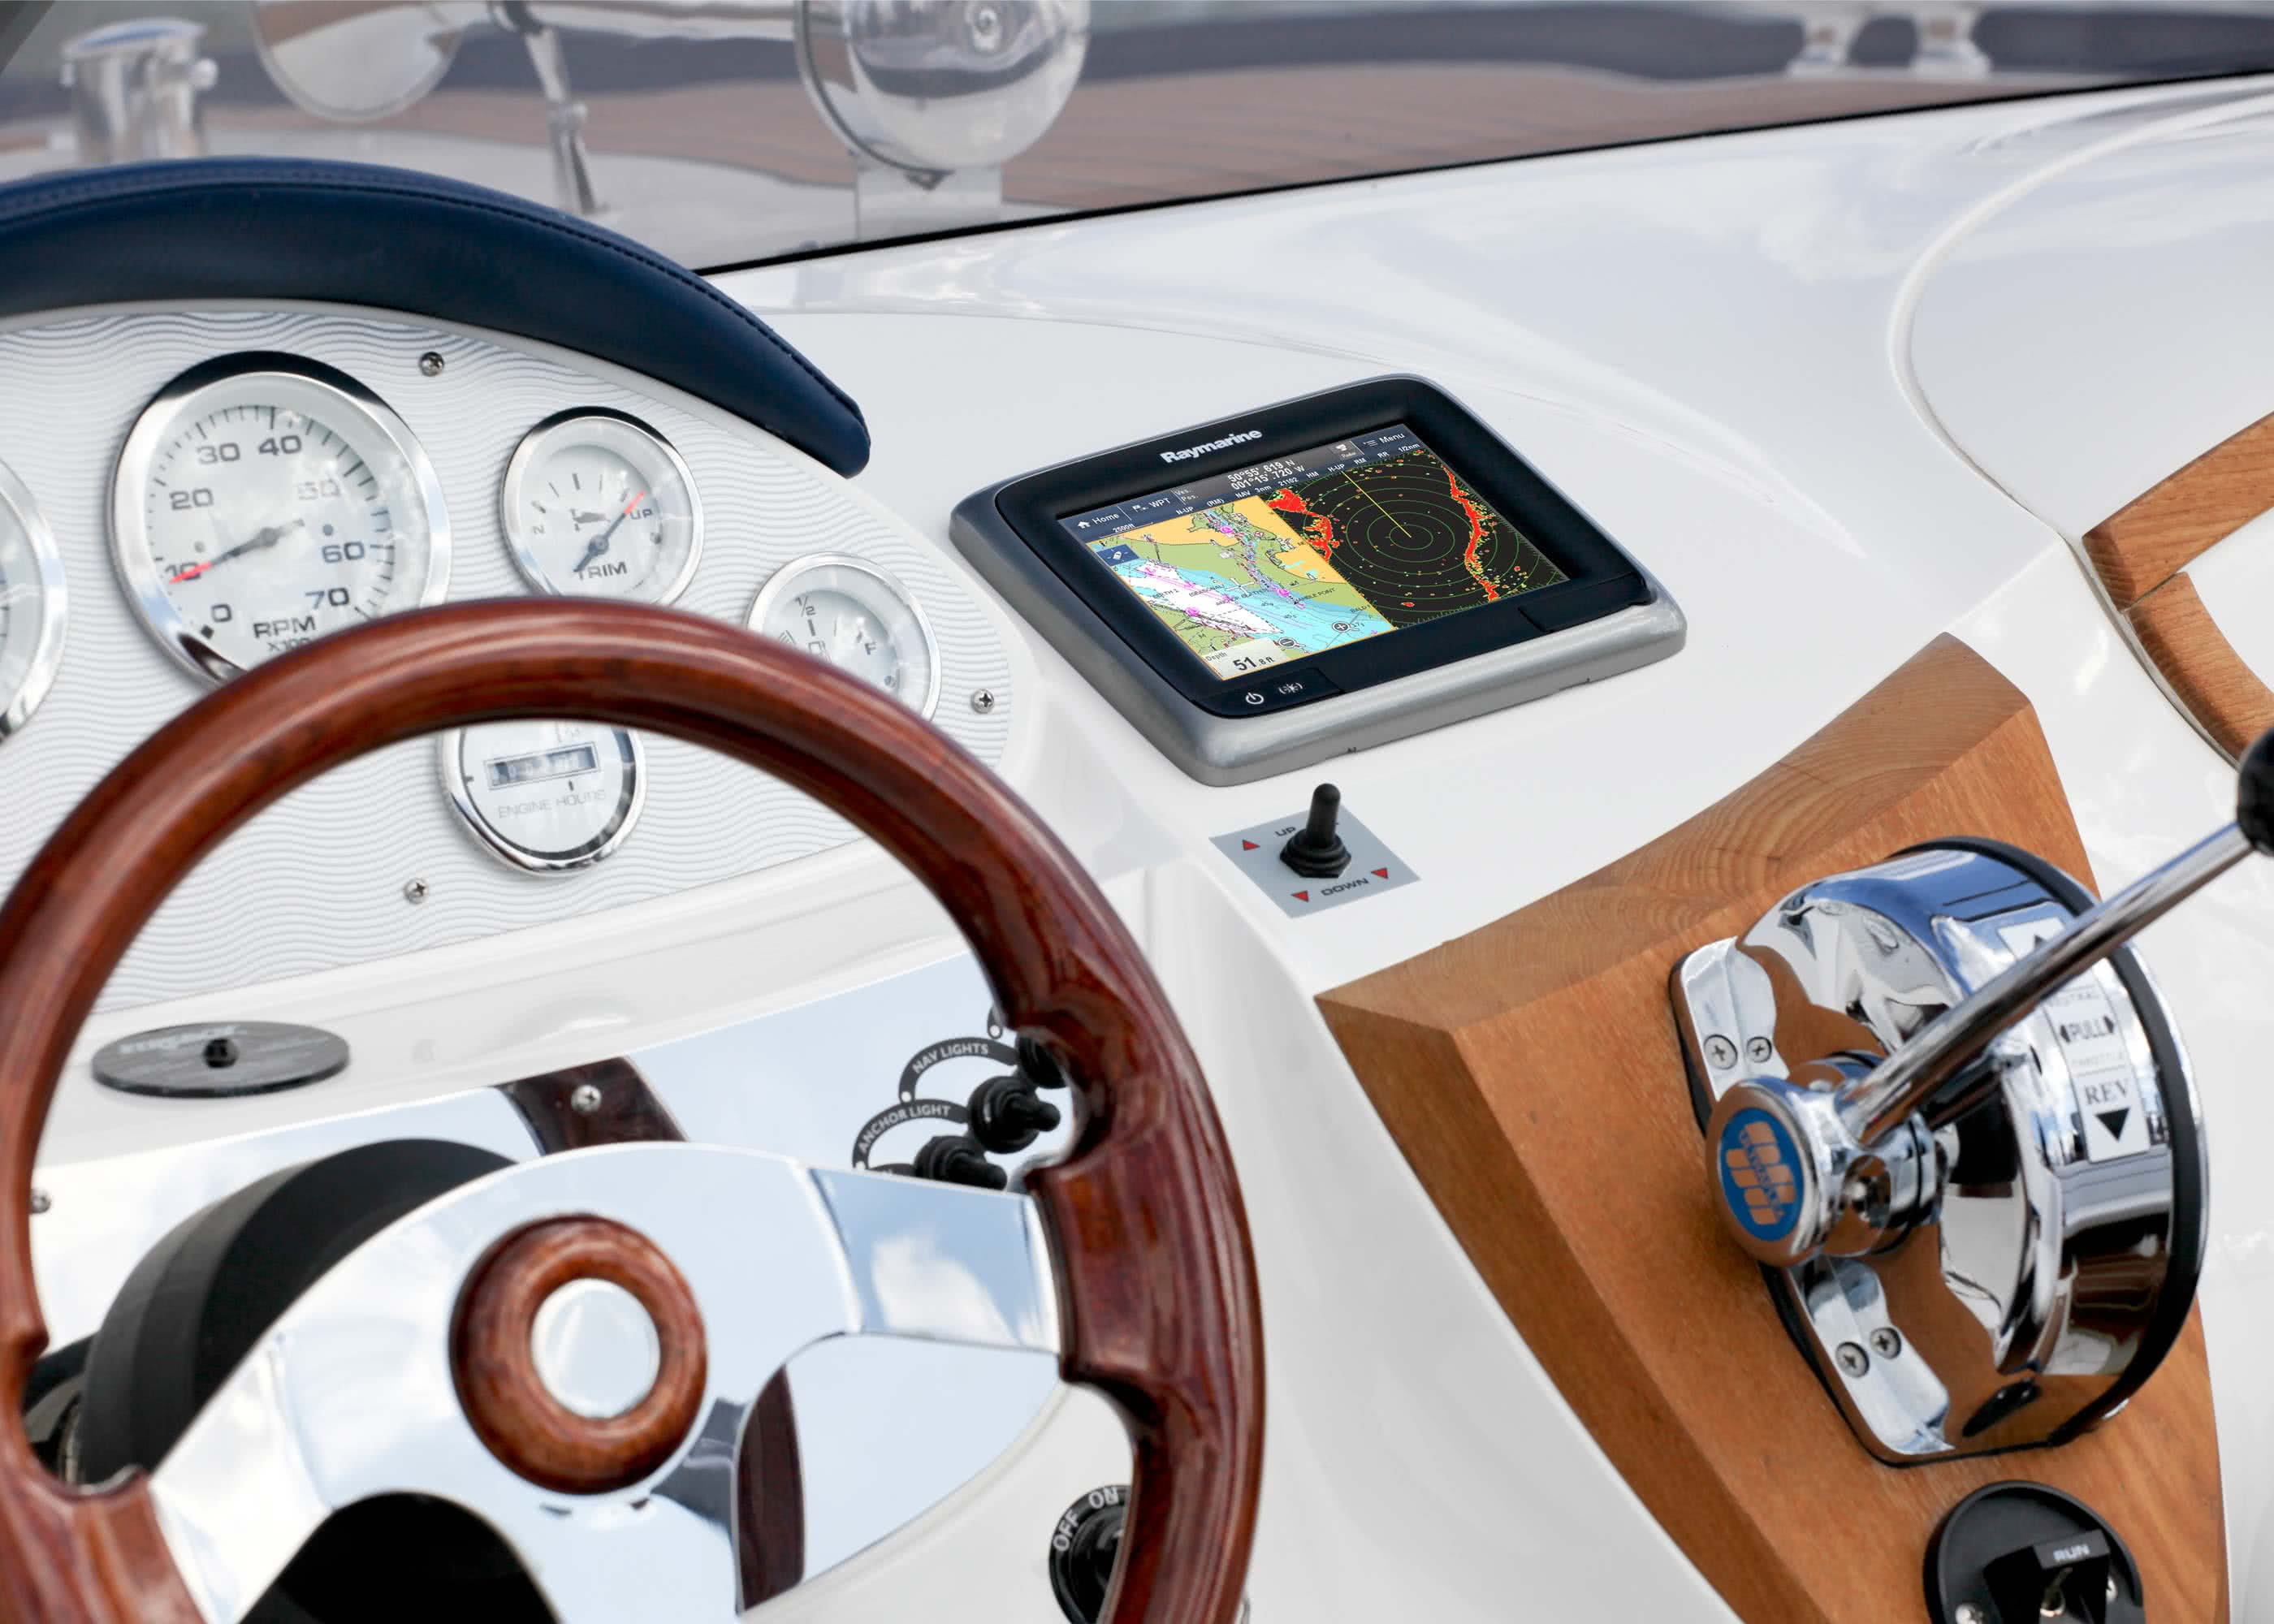 16056_Raymarine_Multifunktionsdisplay_a67_4.jpg